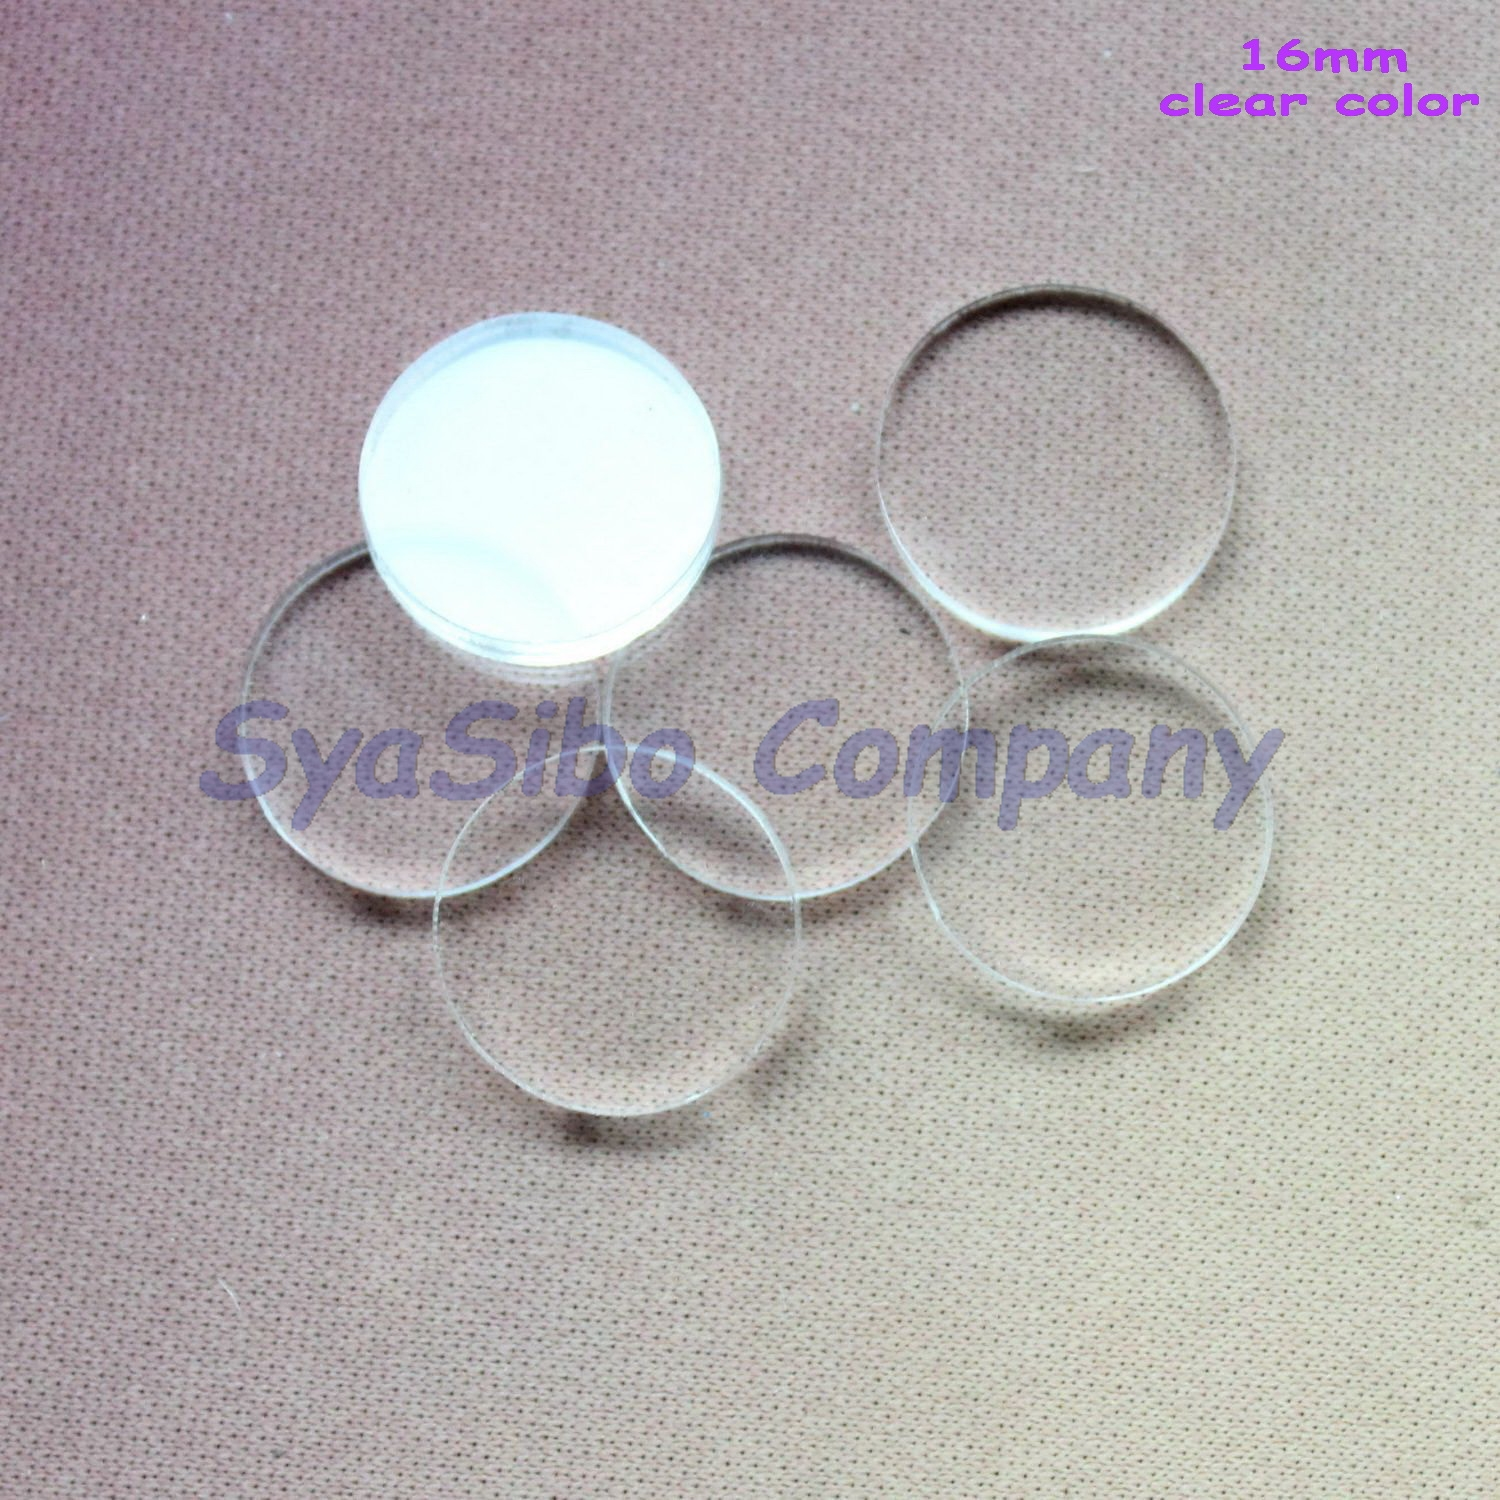 Acrylic clear ornaments -  100pcs Lot 16mm Clear Acrylic Disc Beads Polished Acrylic Circle Ornaments Bulk Laser